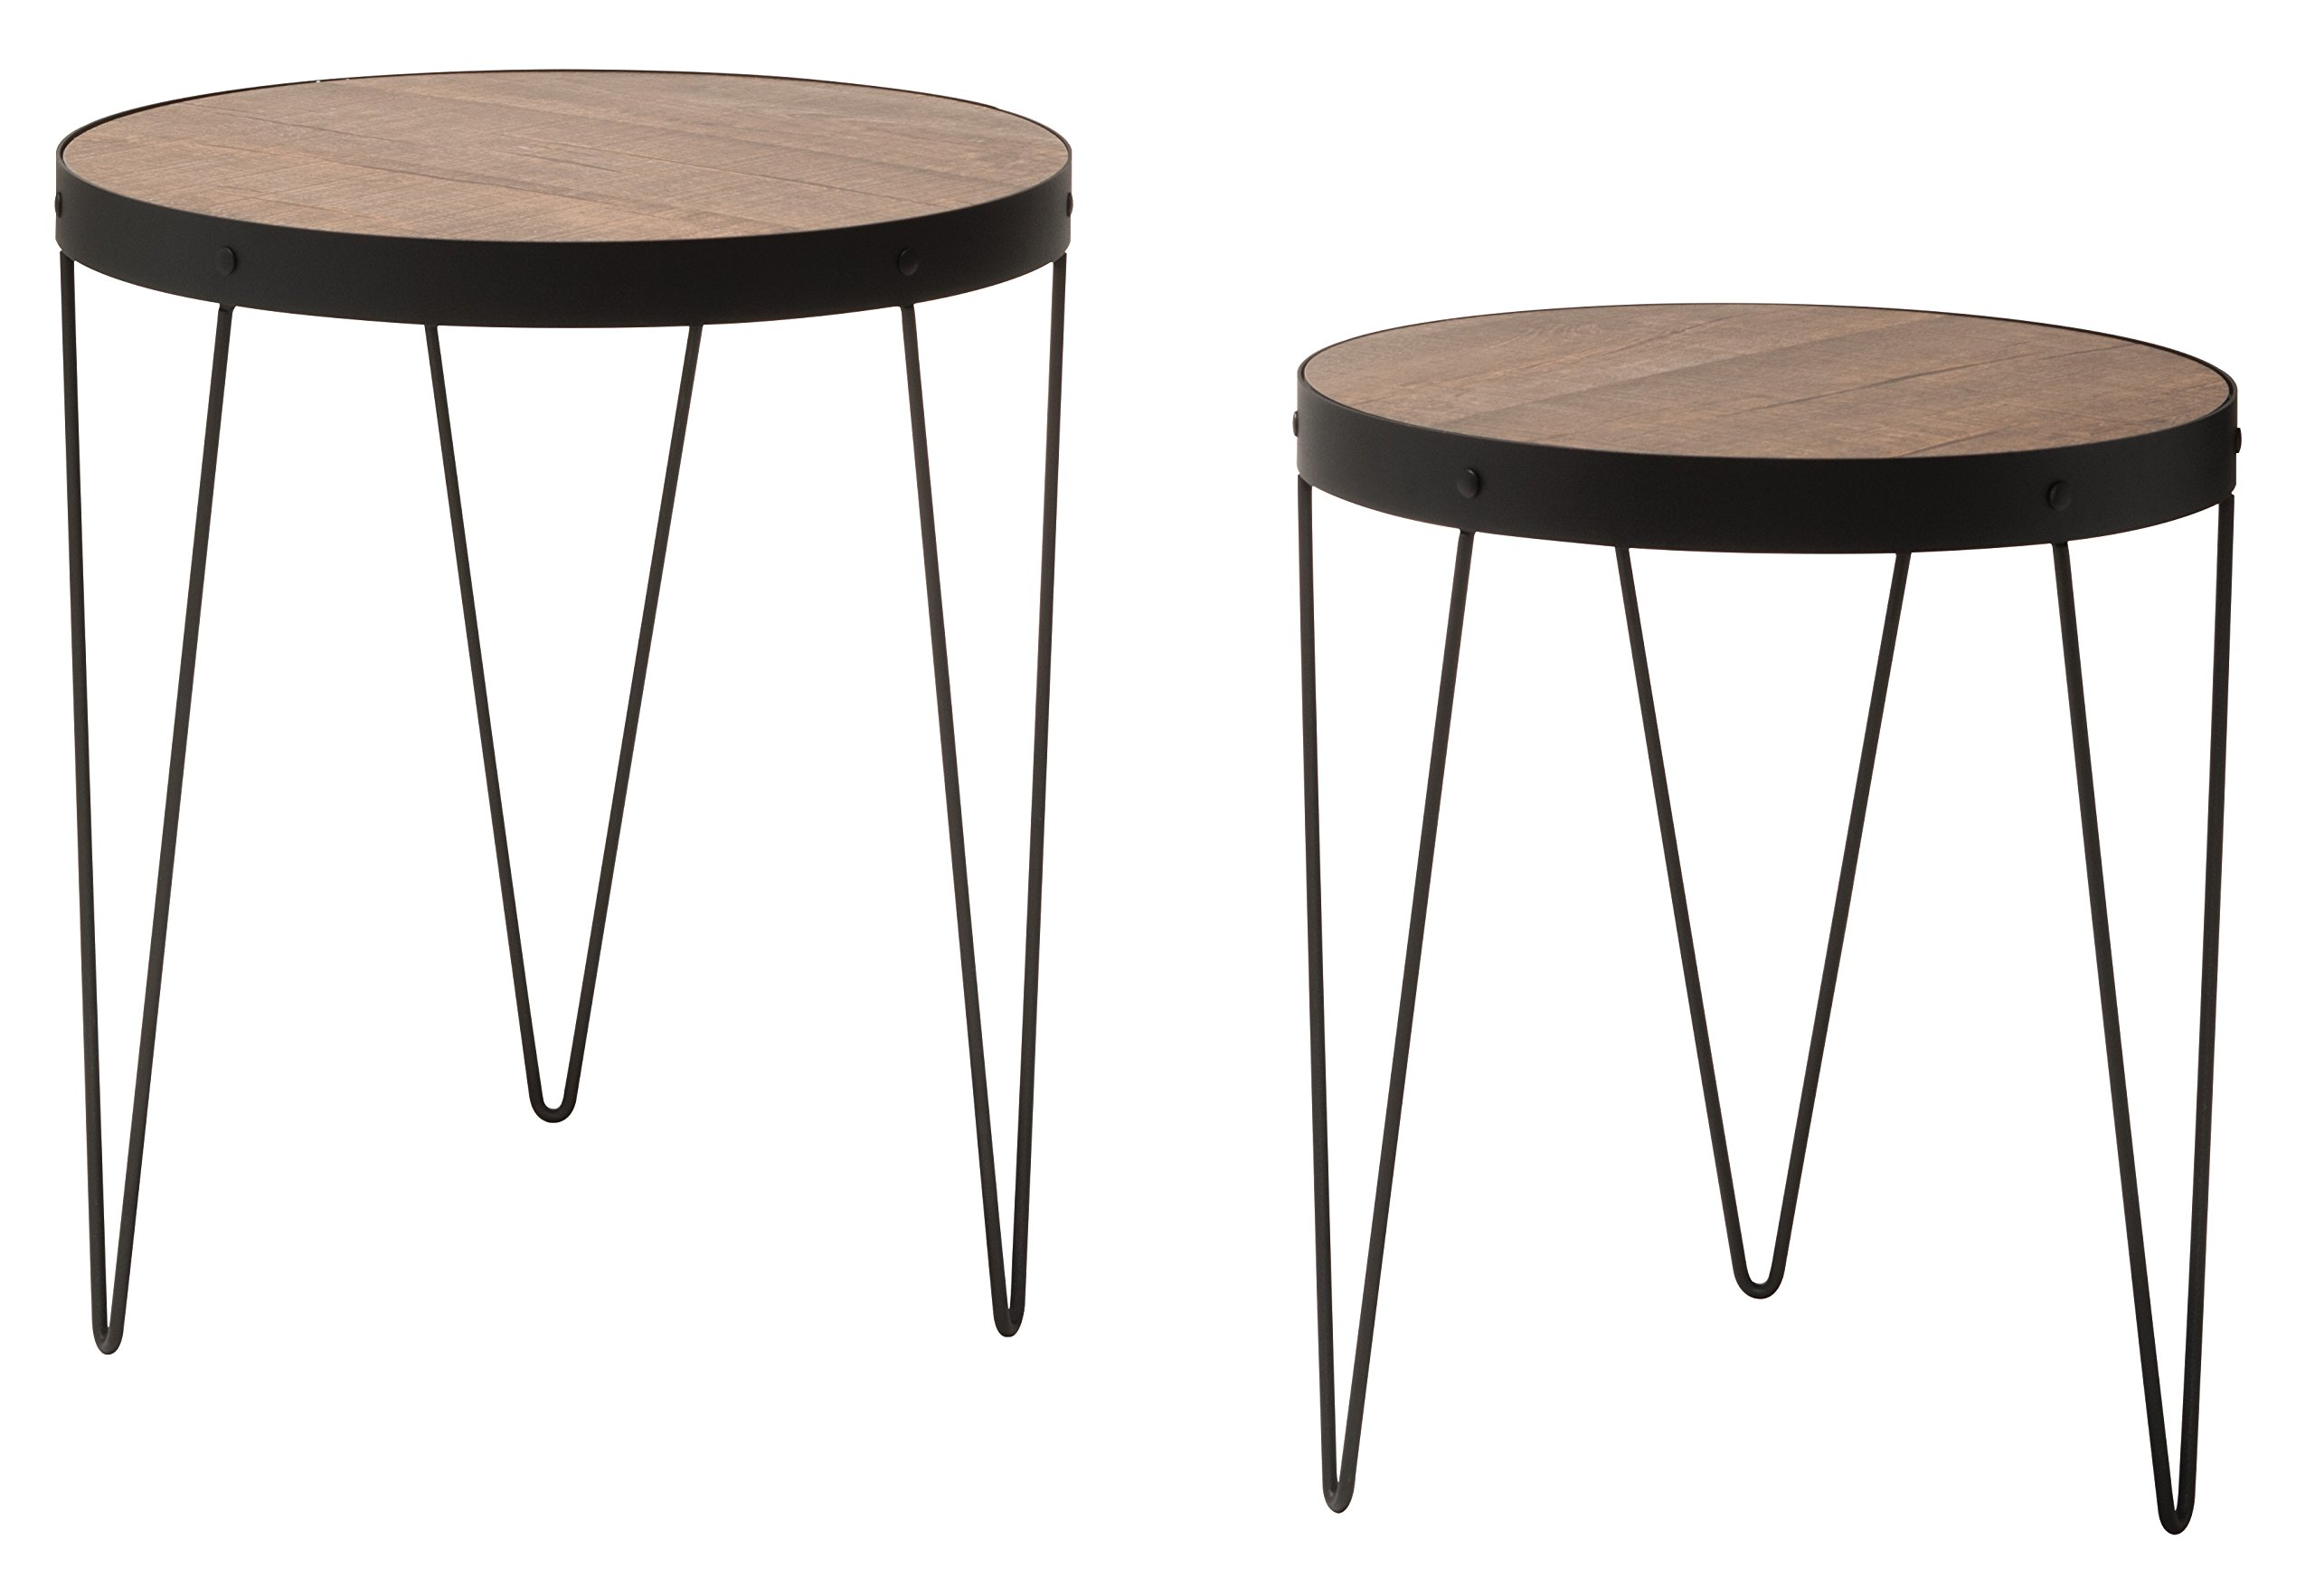 OSP Designs PASA7920-SBC-osp Pasadena Nesting Accent Tables Set with Rustic Wood Top and Metal Frame (2 Pack), Calico/Matte Black